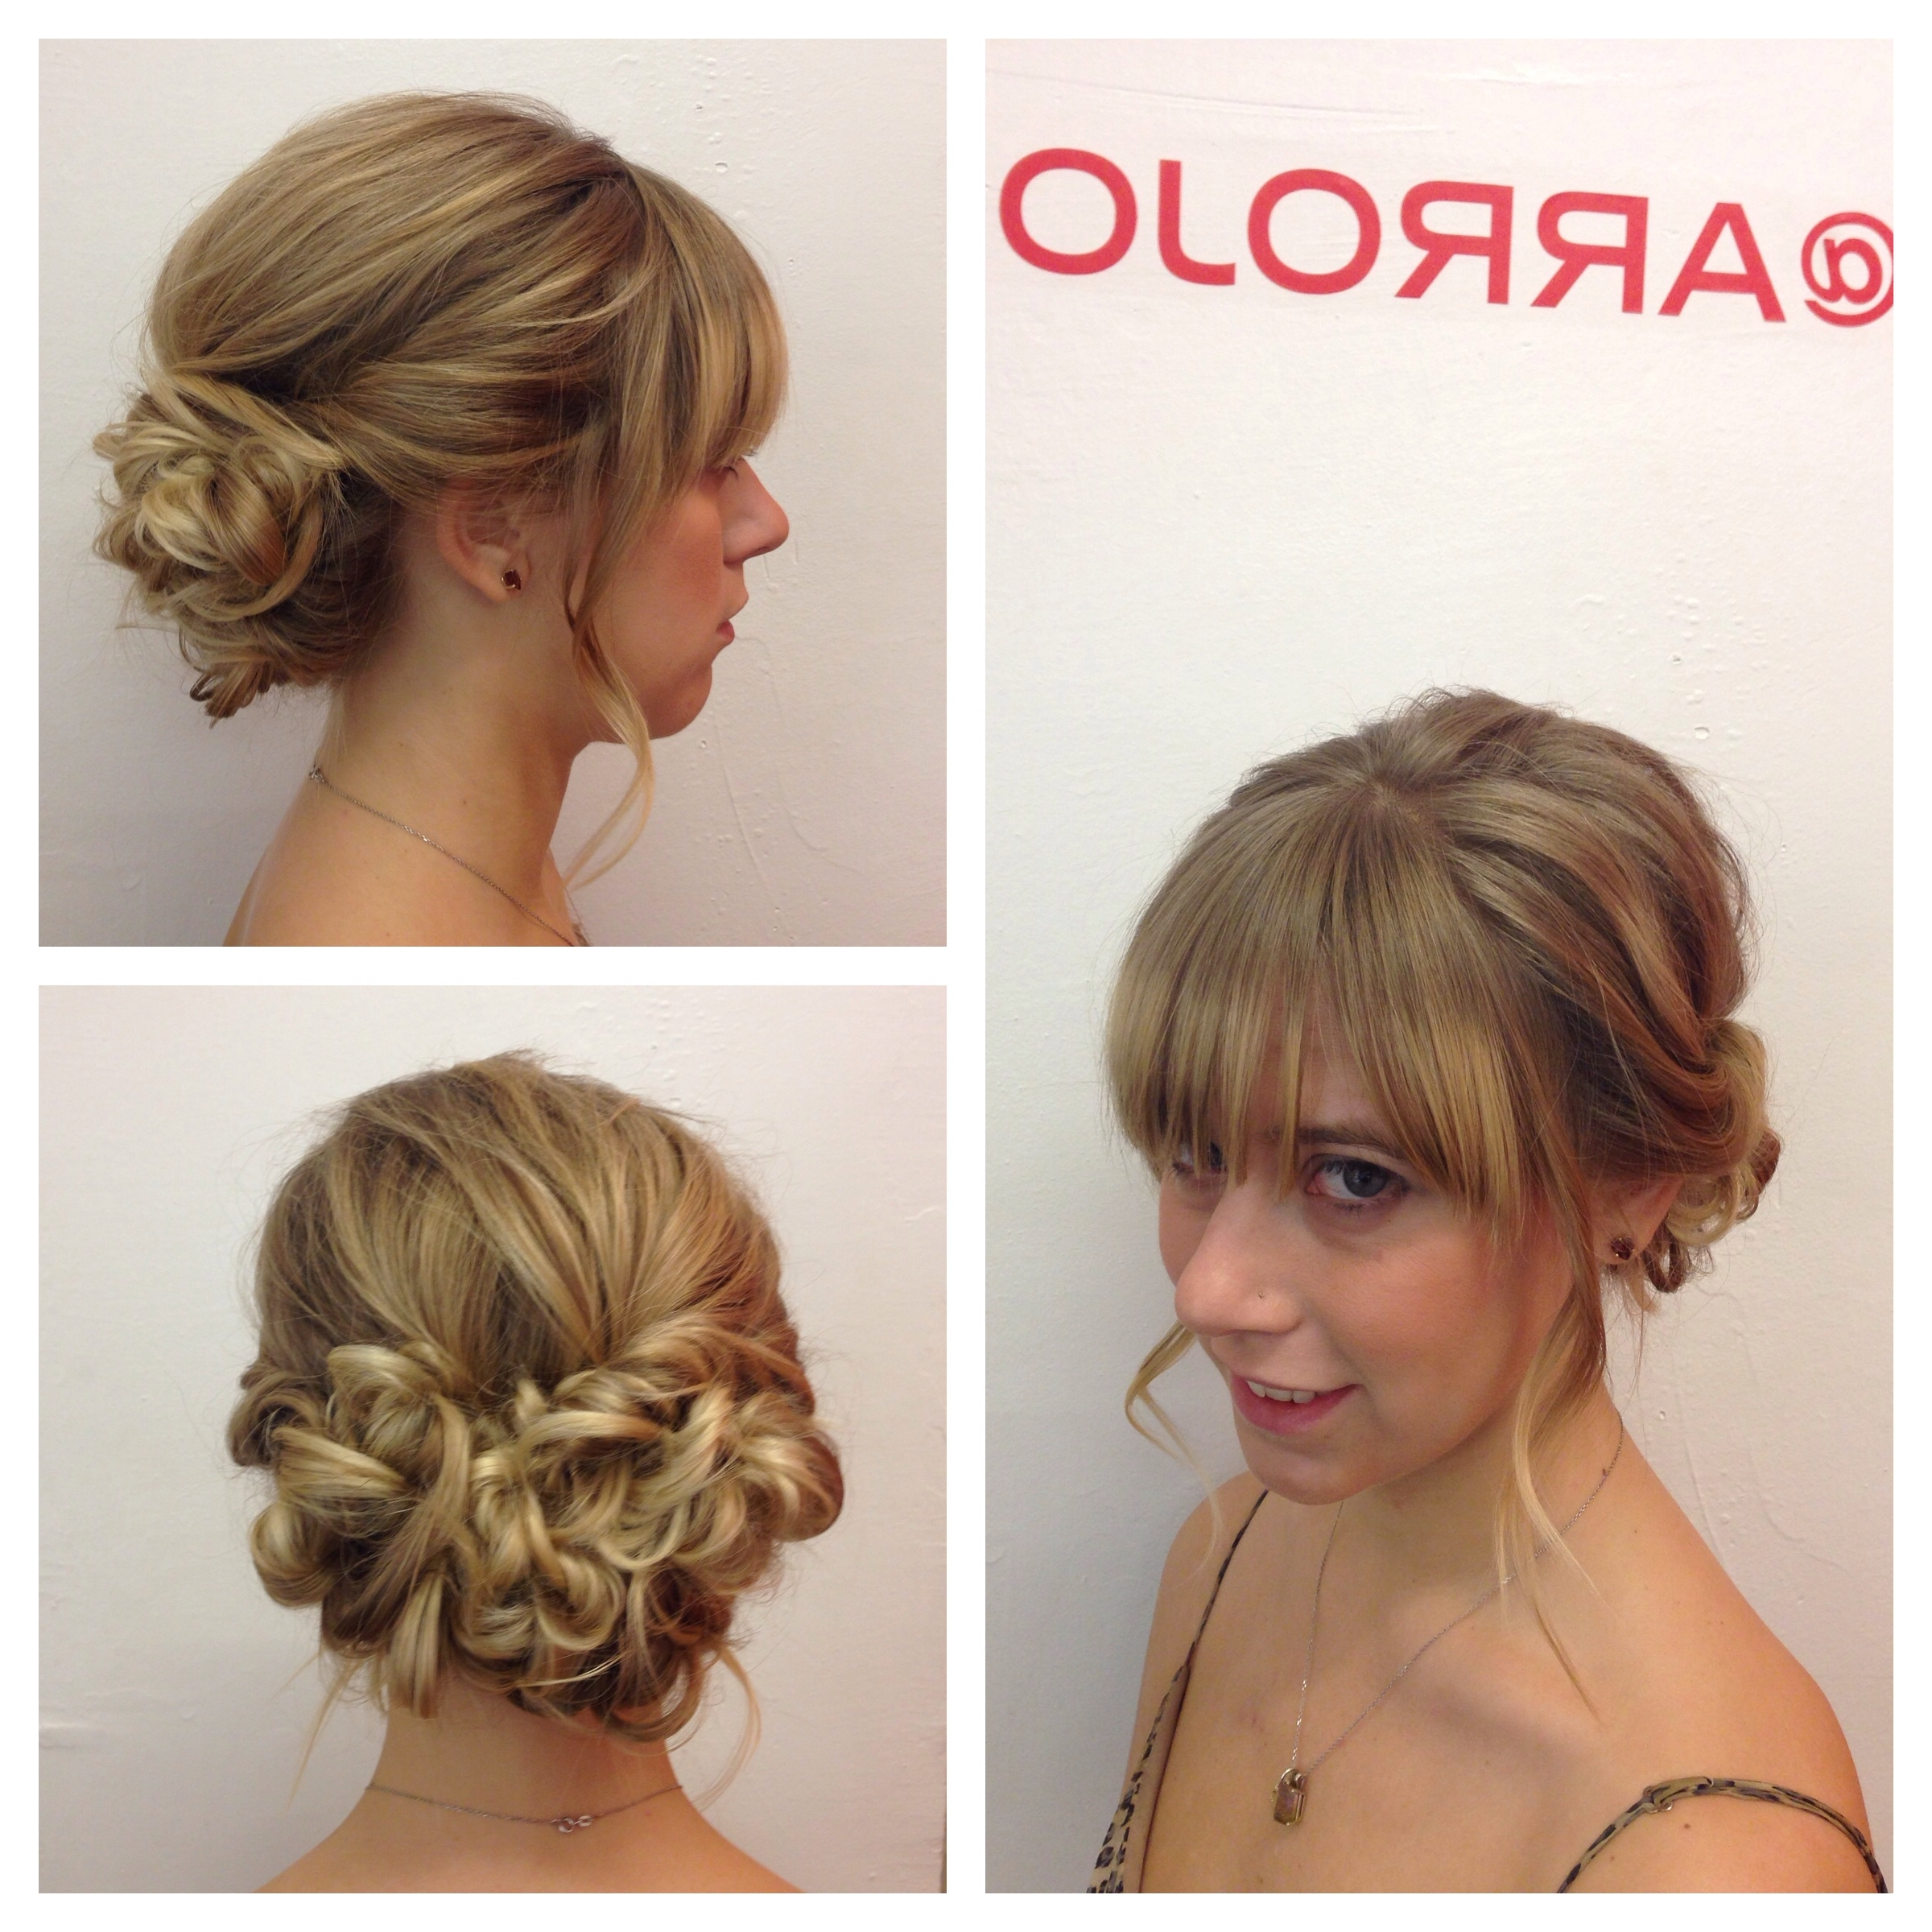 Messy Low Bun Wedding Hair Trends Guides For Elegant Hairstyles Inside Low Messy Updo Hairstyles (View 14 of 15)